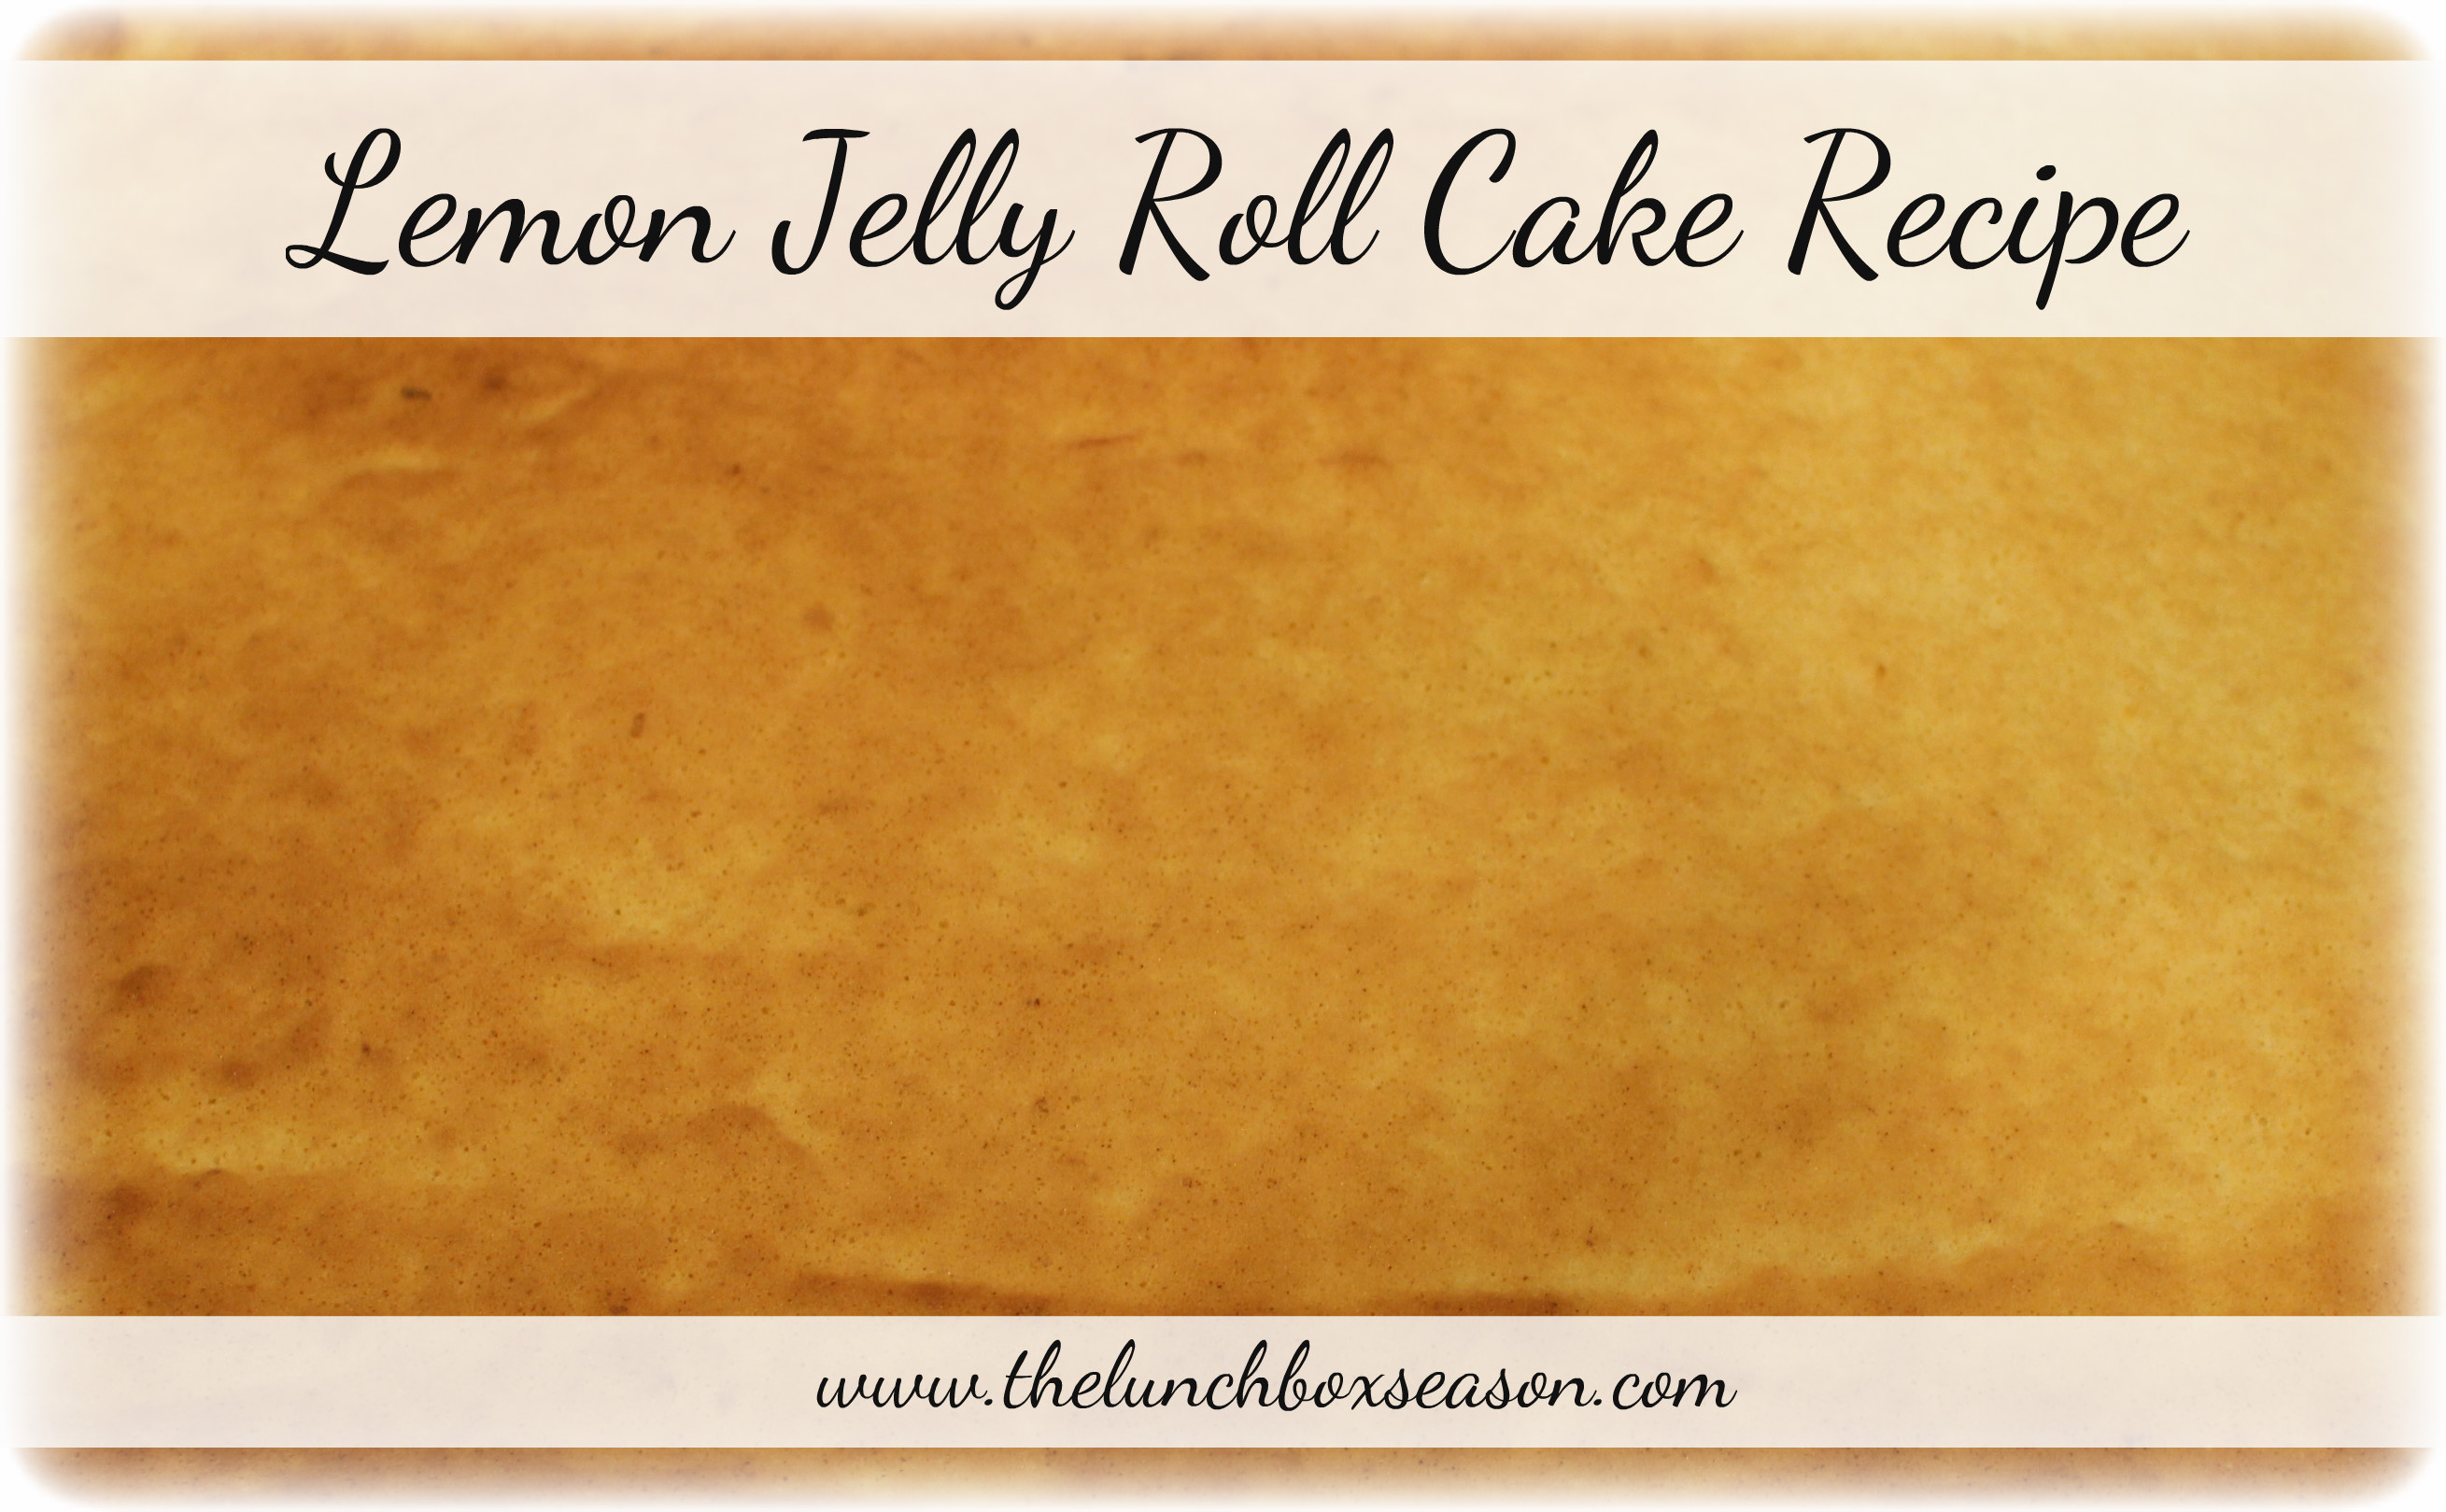 Cake Mix In Jelly Roll Pan